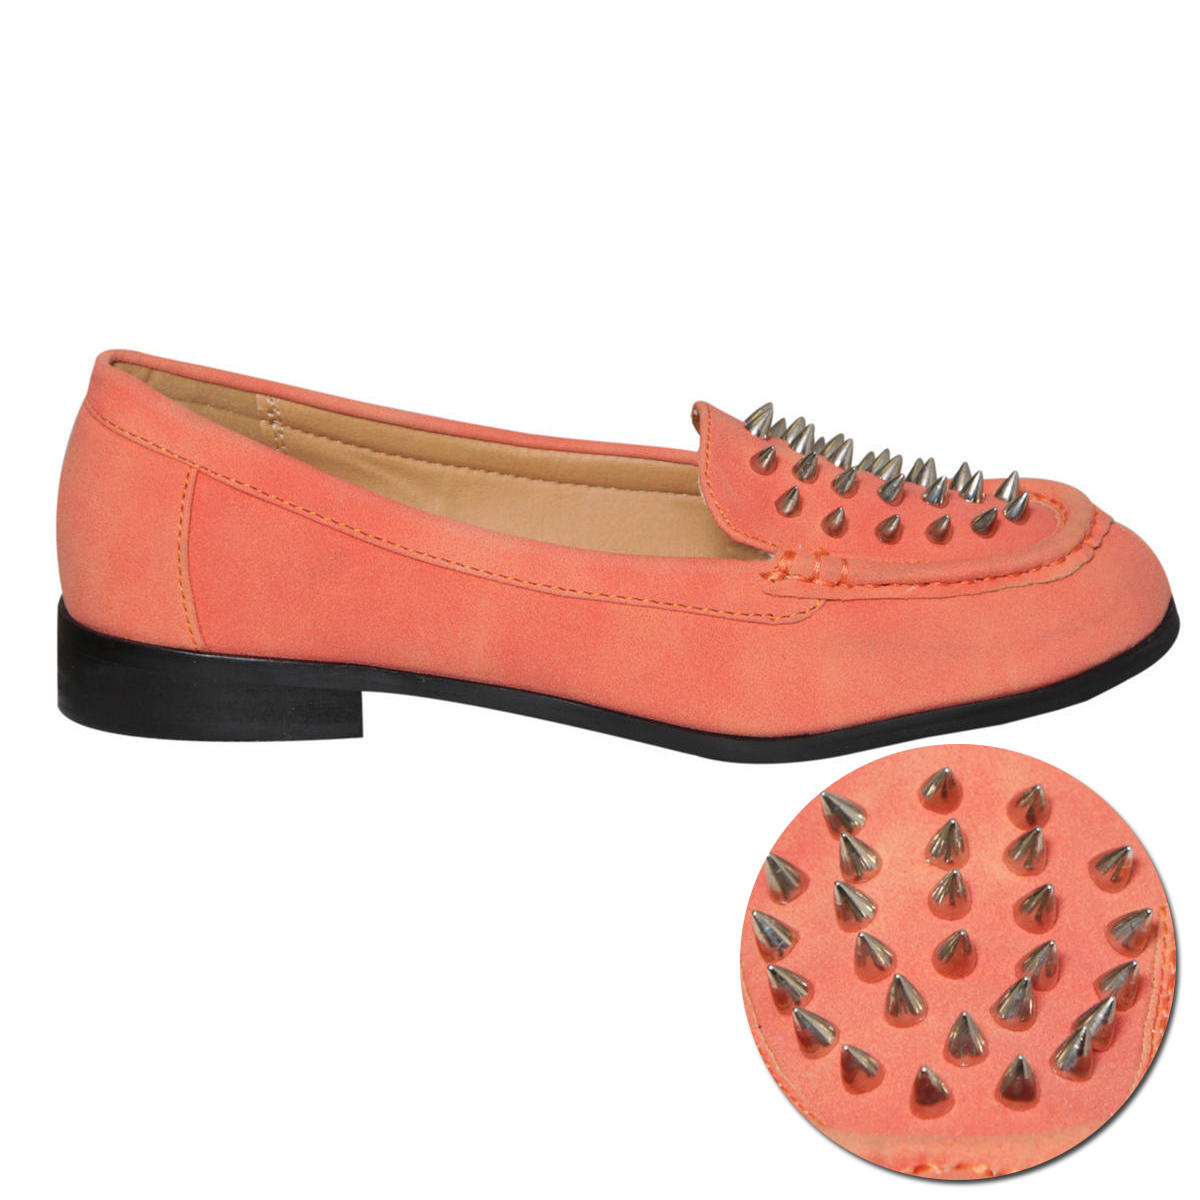 Coral Spike Studded Loafer Shoe Preview